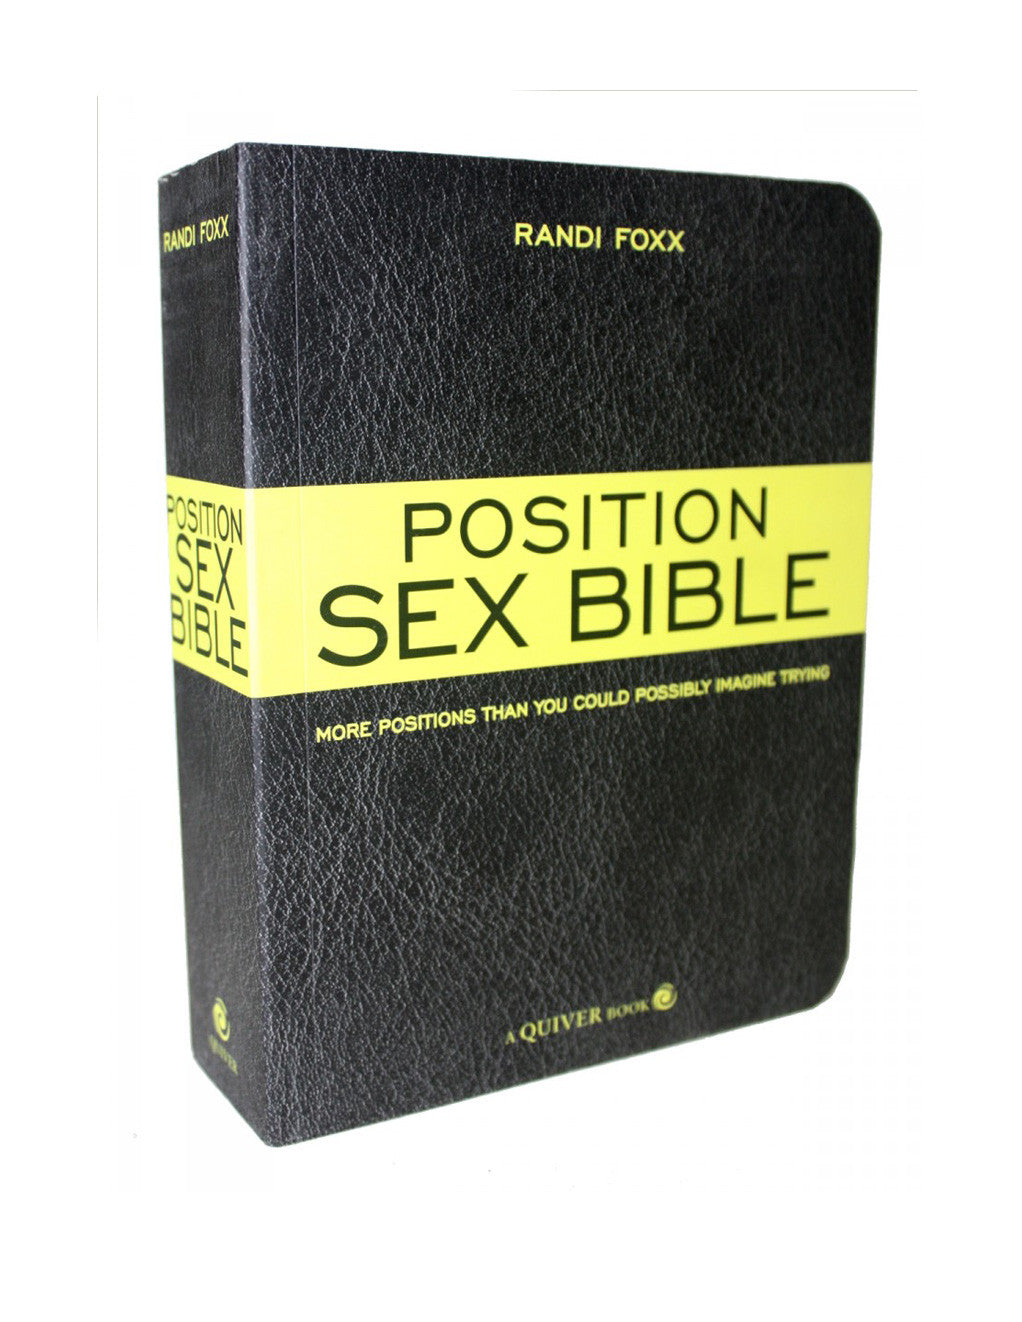 Position Sex Bible by Randi Foxx